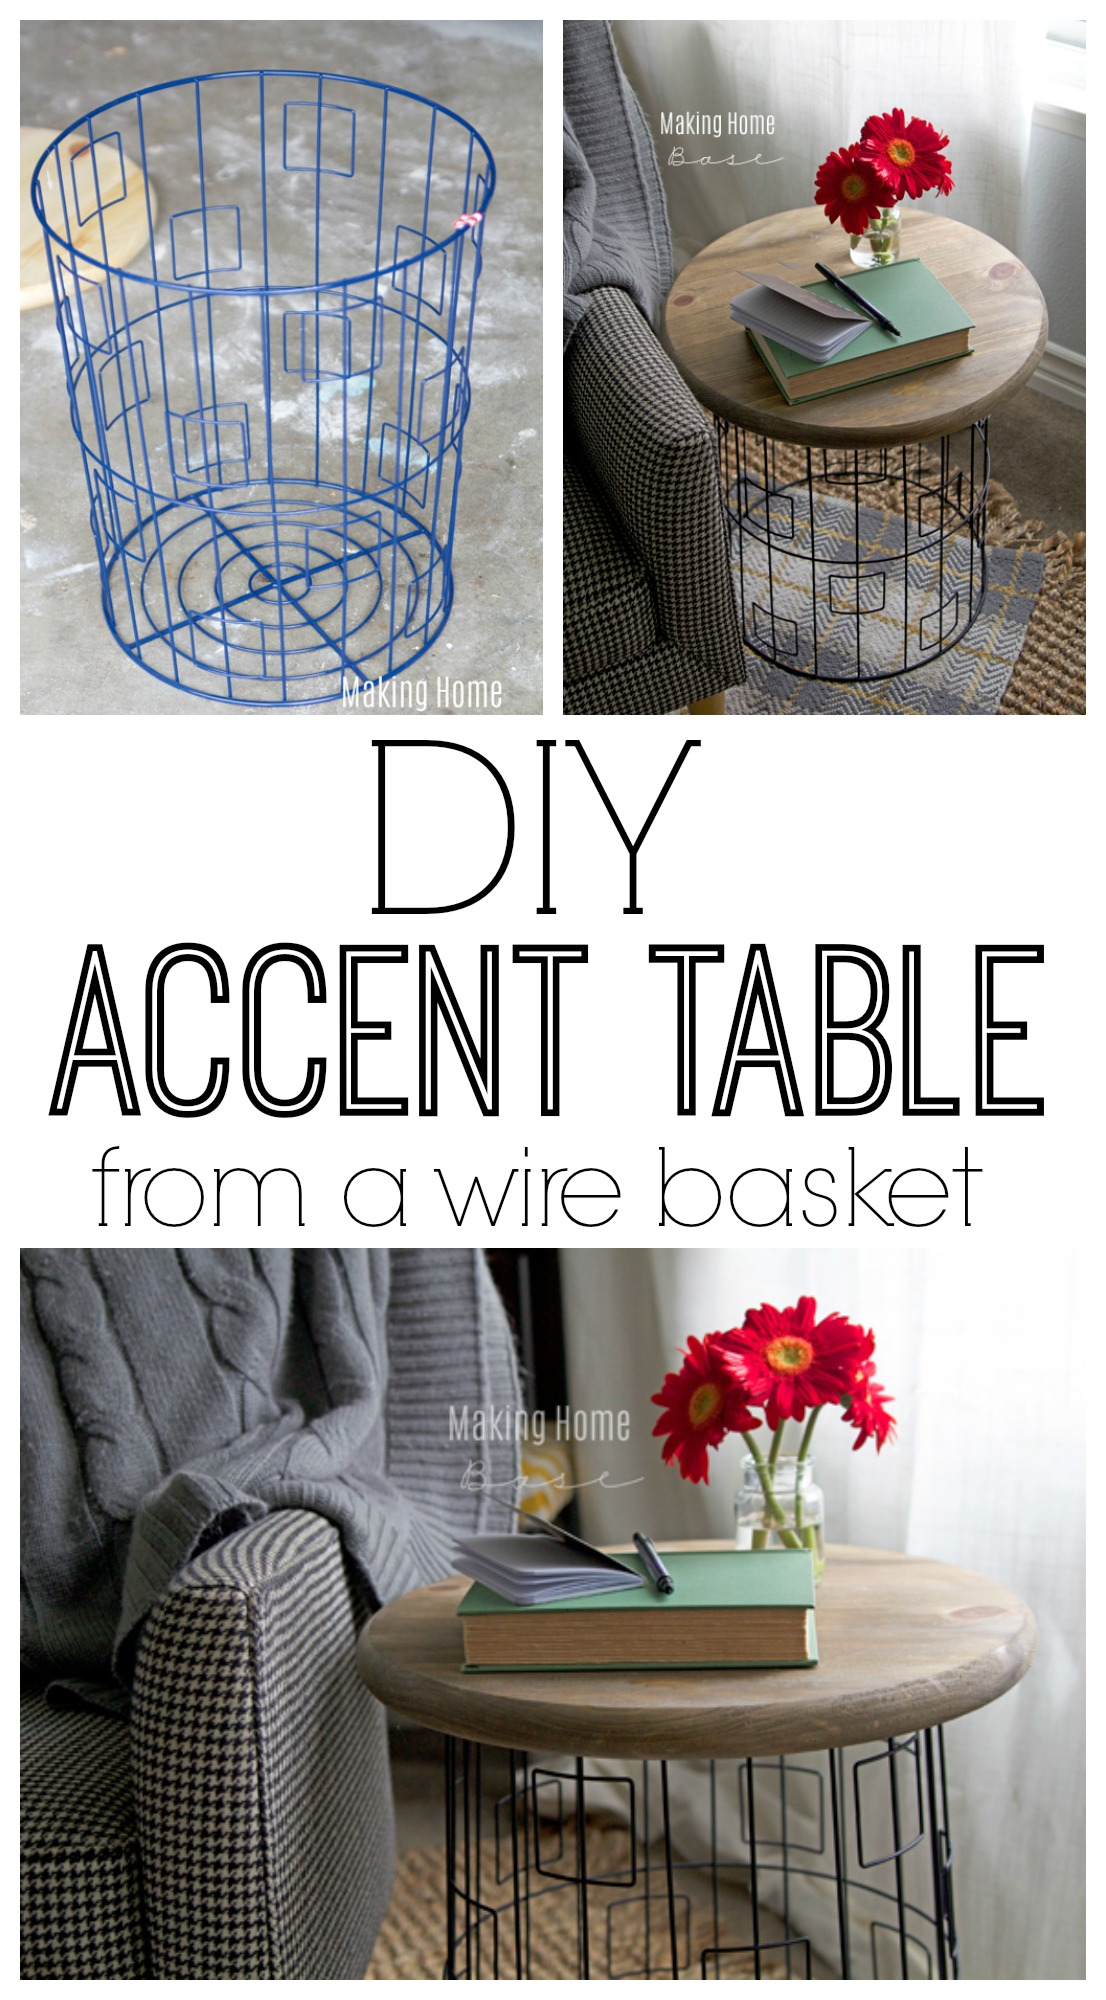 diy accent table from wire laundry basket yellow target tiered metal entry door antique gold wooden frog instrument clearance dining room chairs red tablecloth baby changing